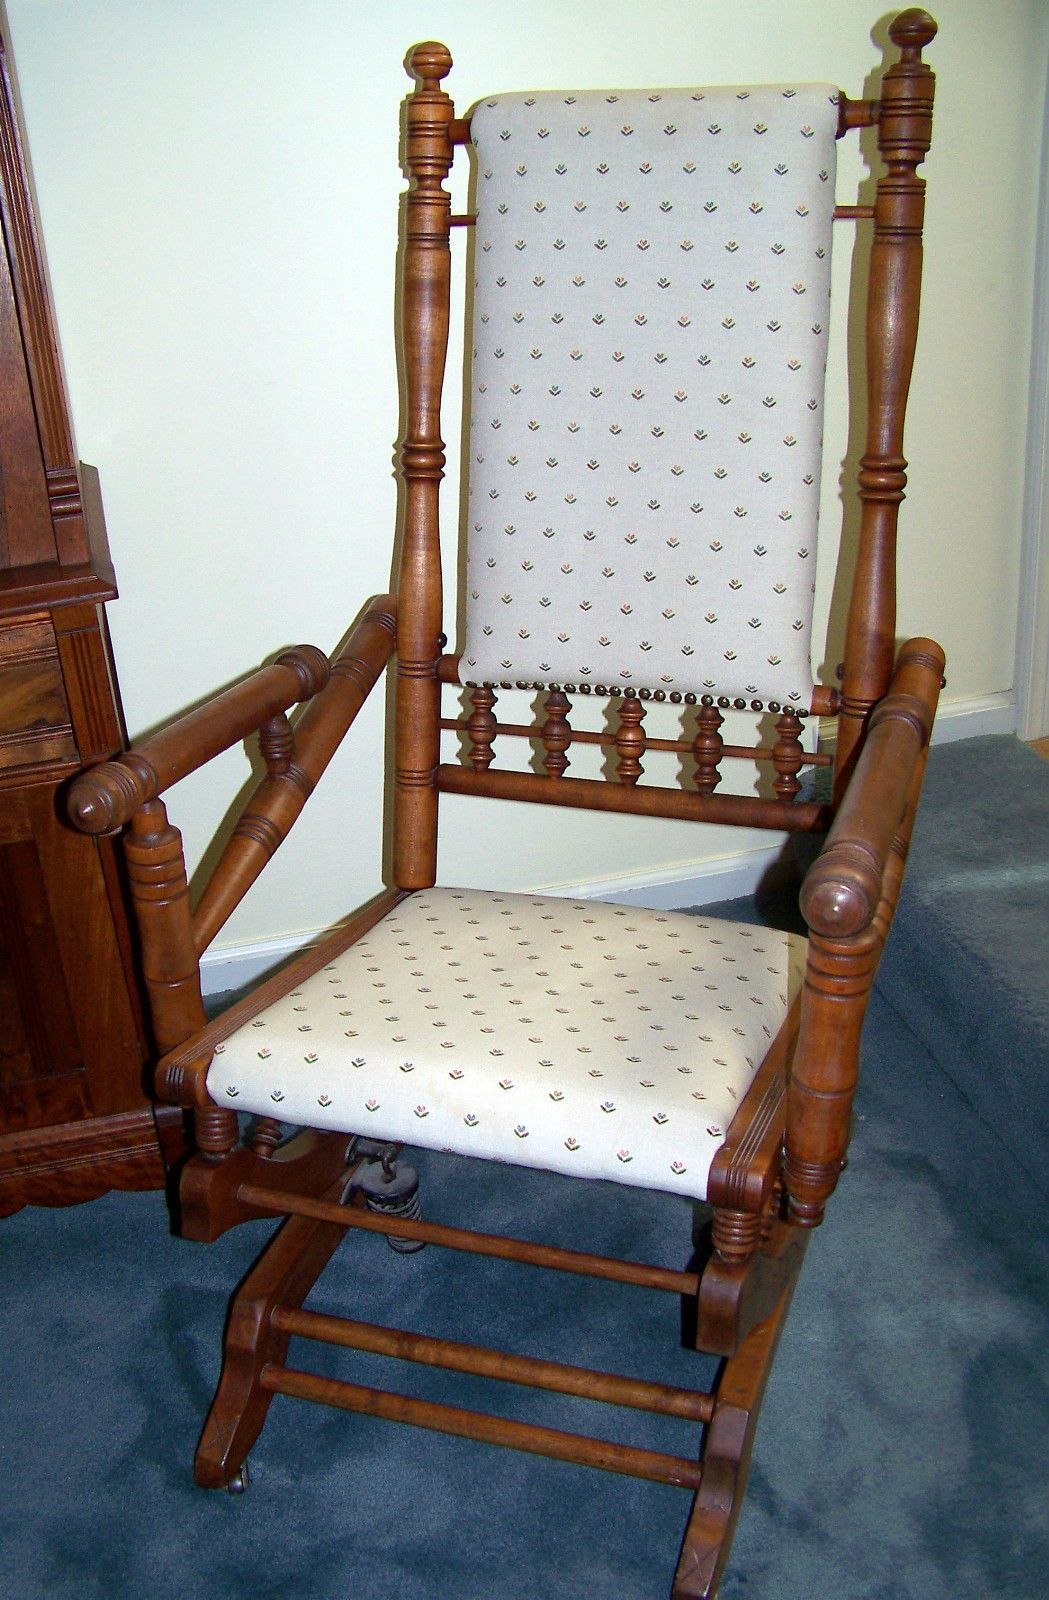 antique platform rocking chair with springs margaritaville beach chairs cvs spindle 1920s maple